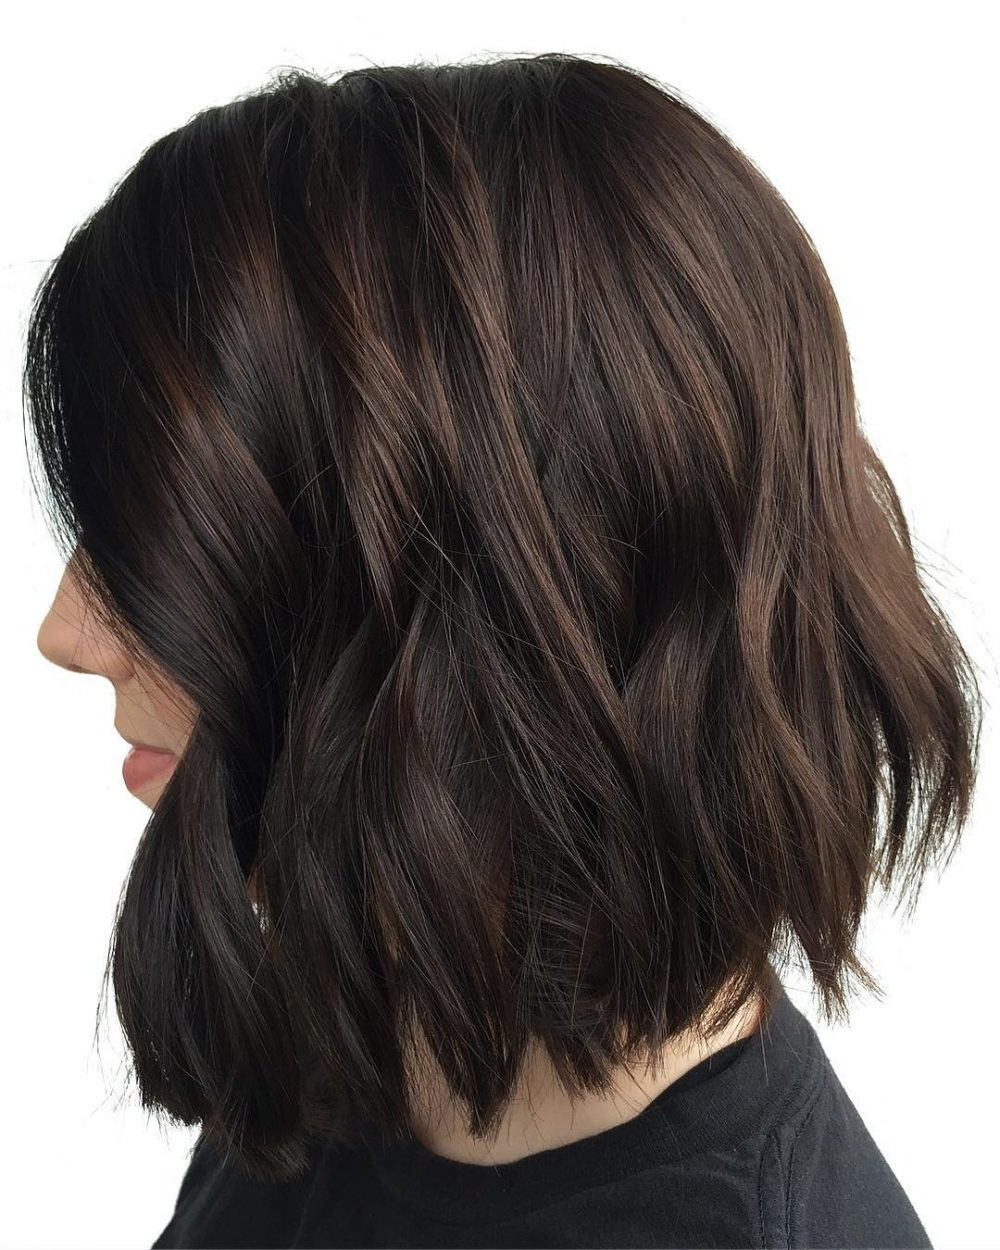 29 Flattering Dark Hair Colors For Every Skin Tone In 2018 With Disheveled Burgundy Brown Bob Hairstyles (View 15 of 25)